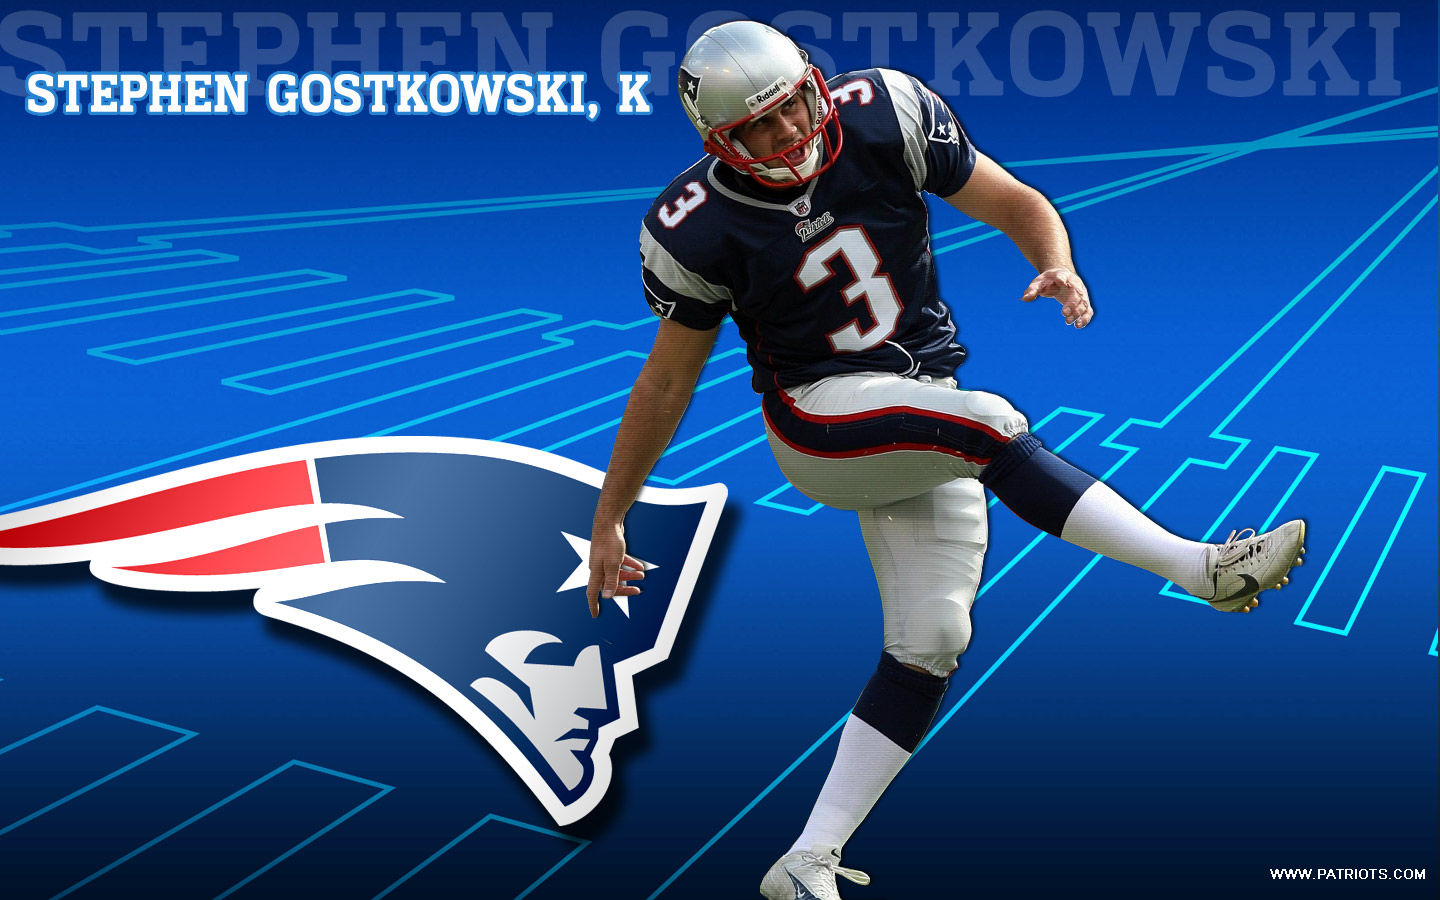 NFL Wallpapers and Screensavers 1440x900